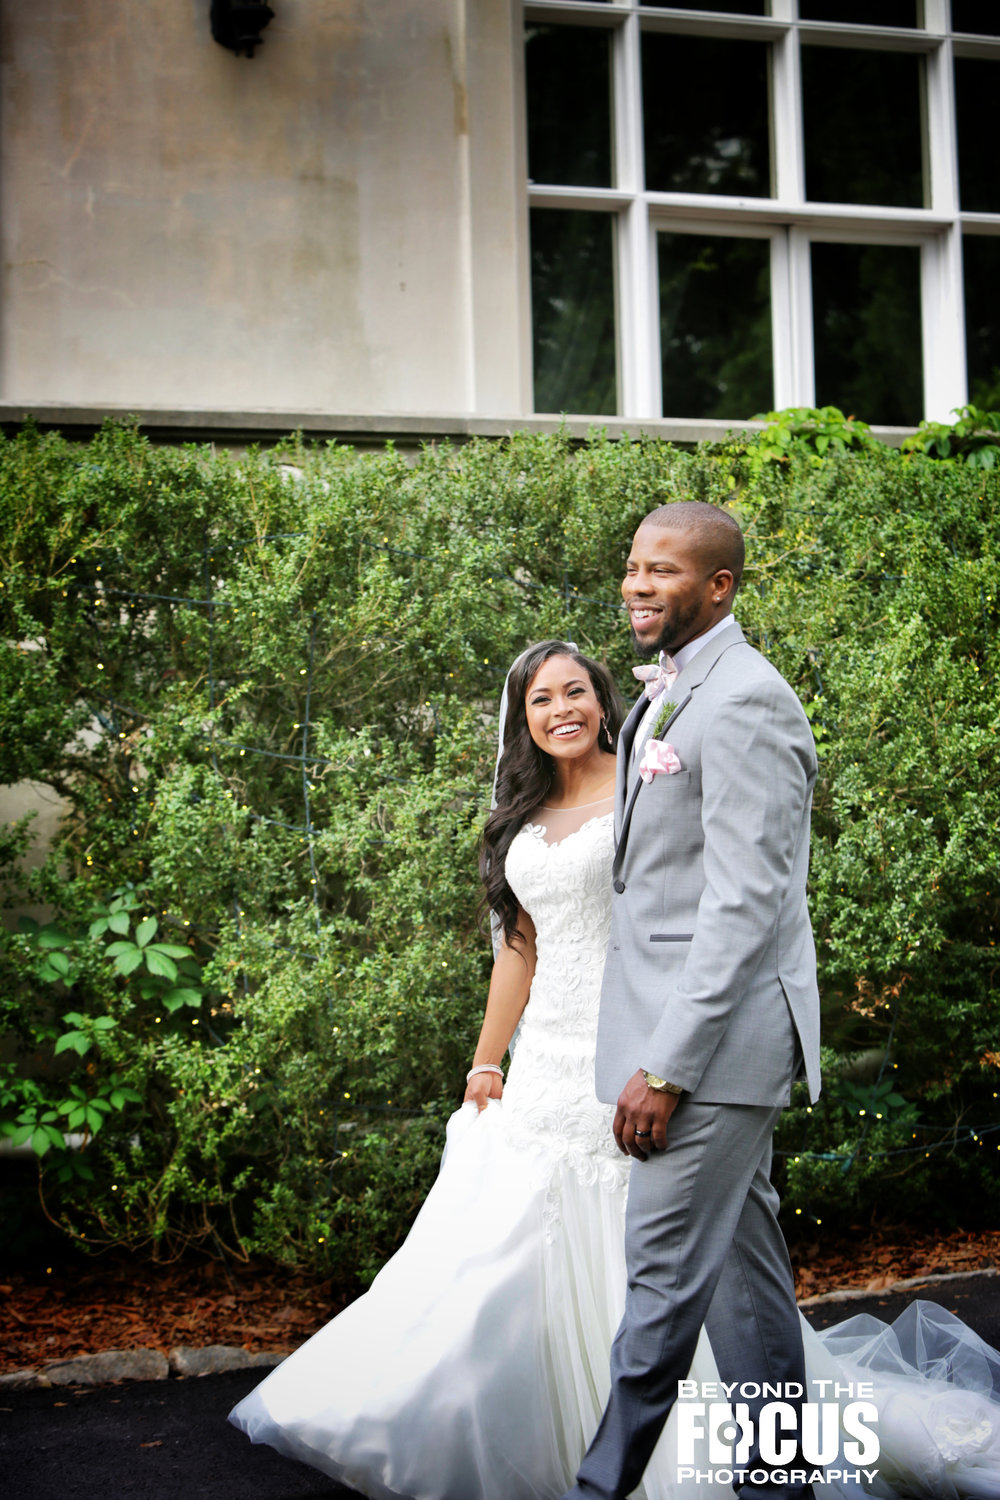 Christan_Imani_WeddingPartyFamily_W_49.jpg